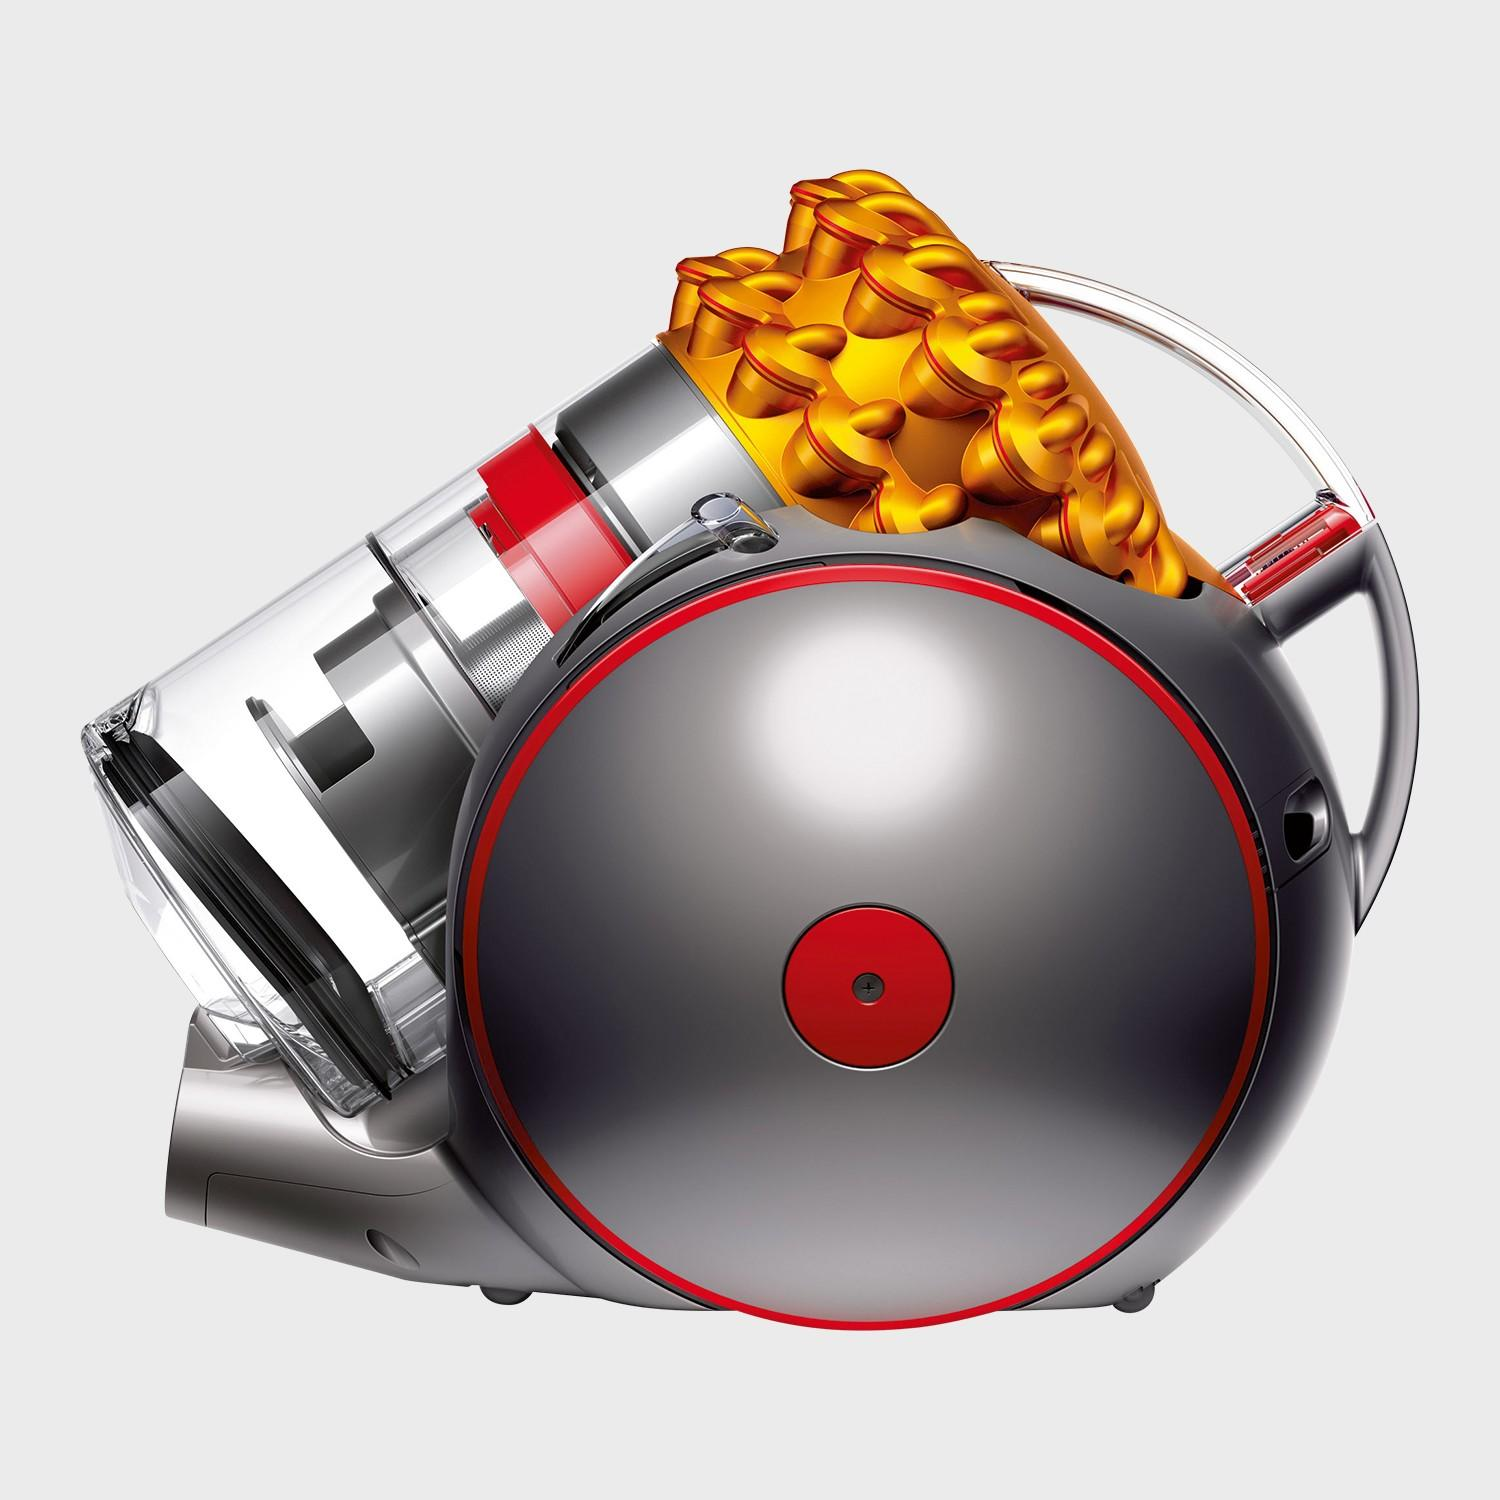 Dyson Big Ball Multi Floor 2 Vacuum Cleaner